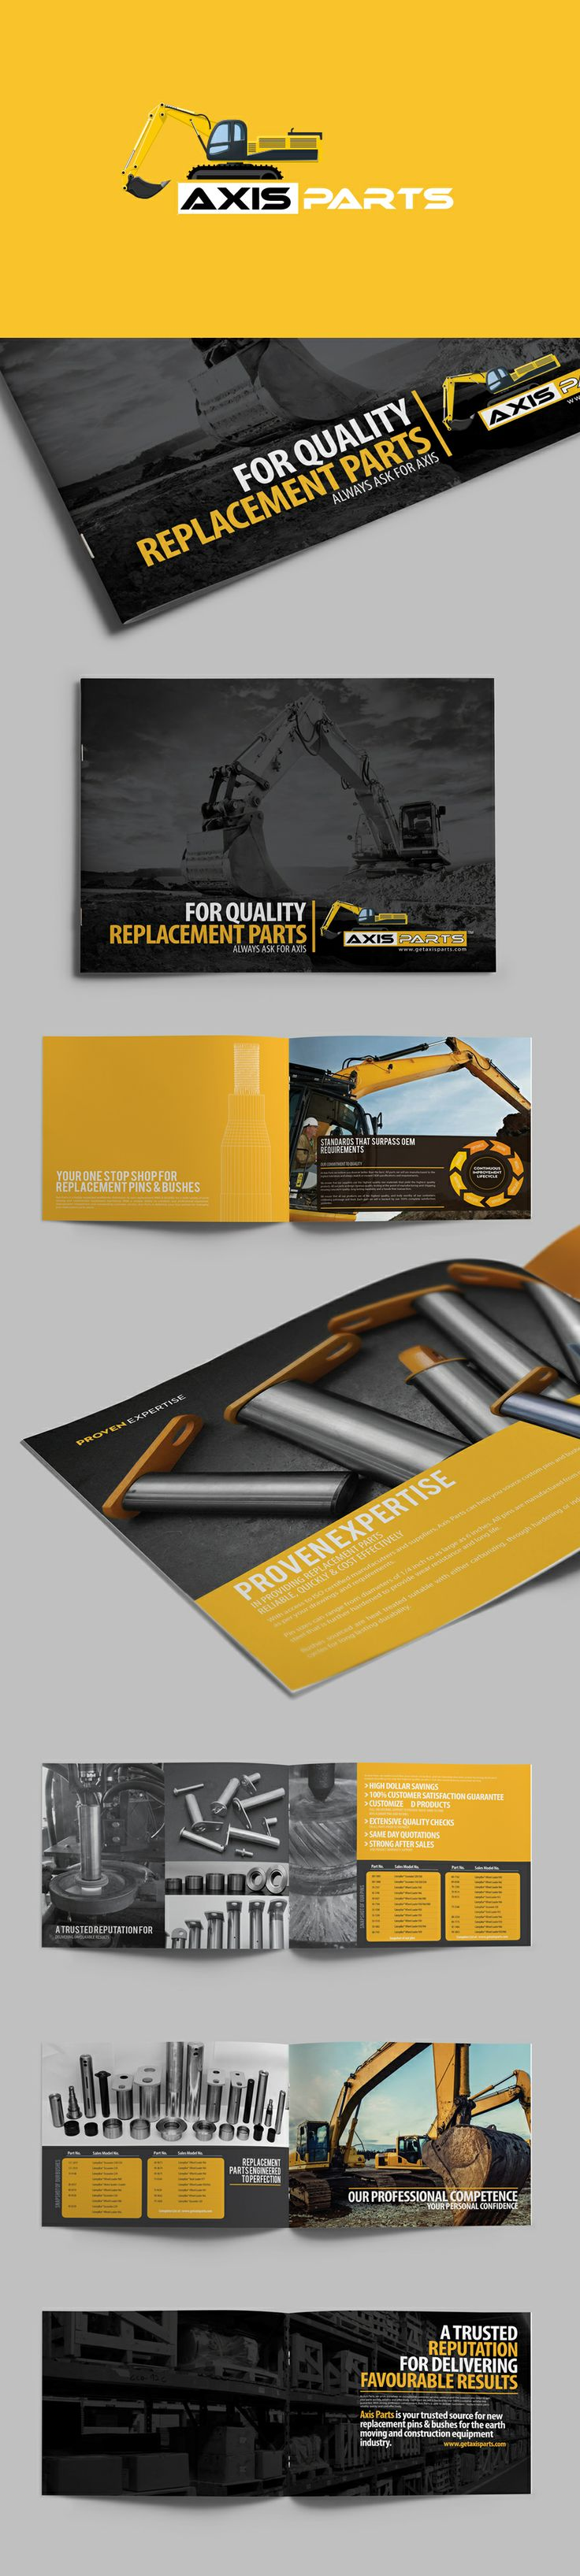 Axisparts brochure by Lemongraphic (via Creattica)